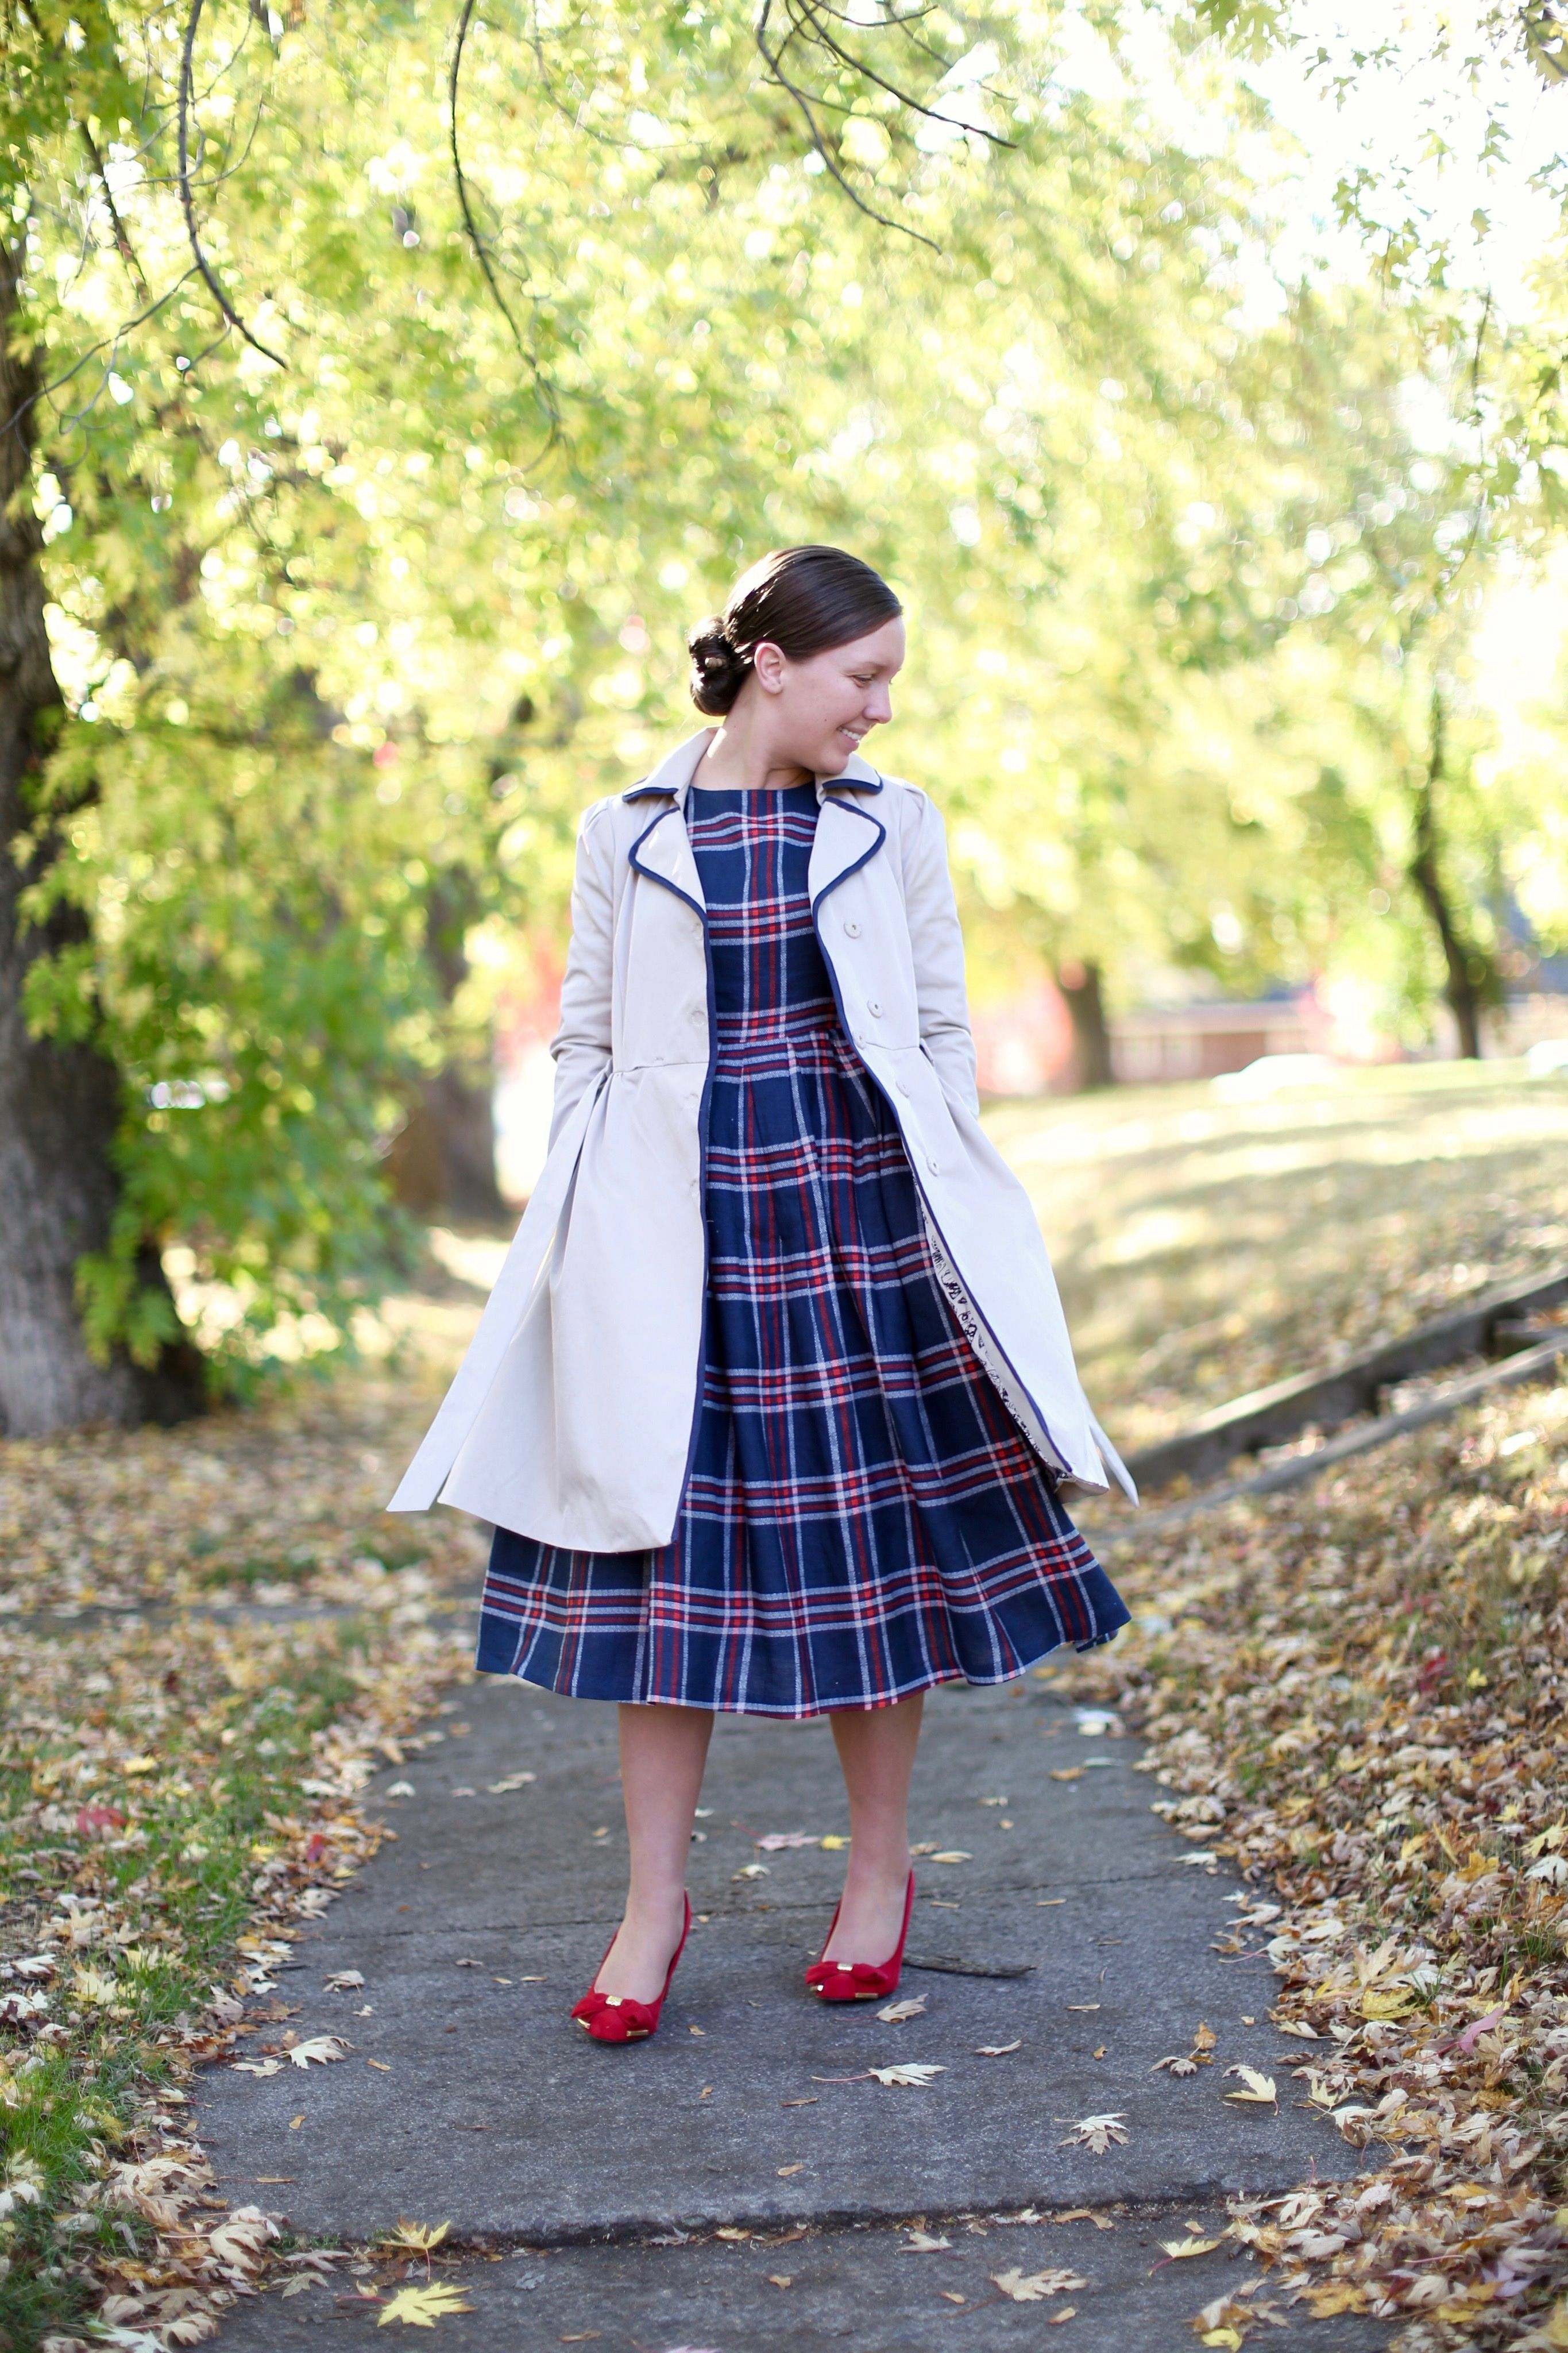 Charity Walter, Dainty Jewell's CEO, features the Highlands Dress on @shesintentional